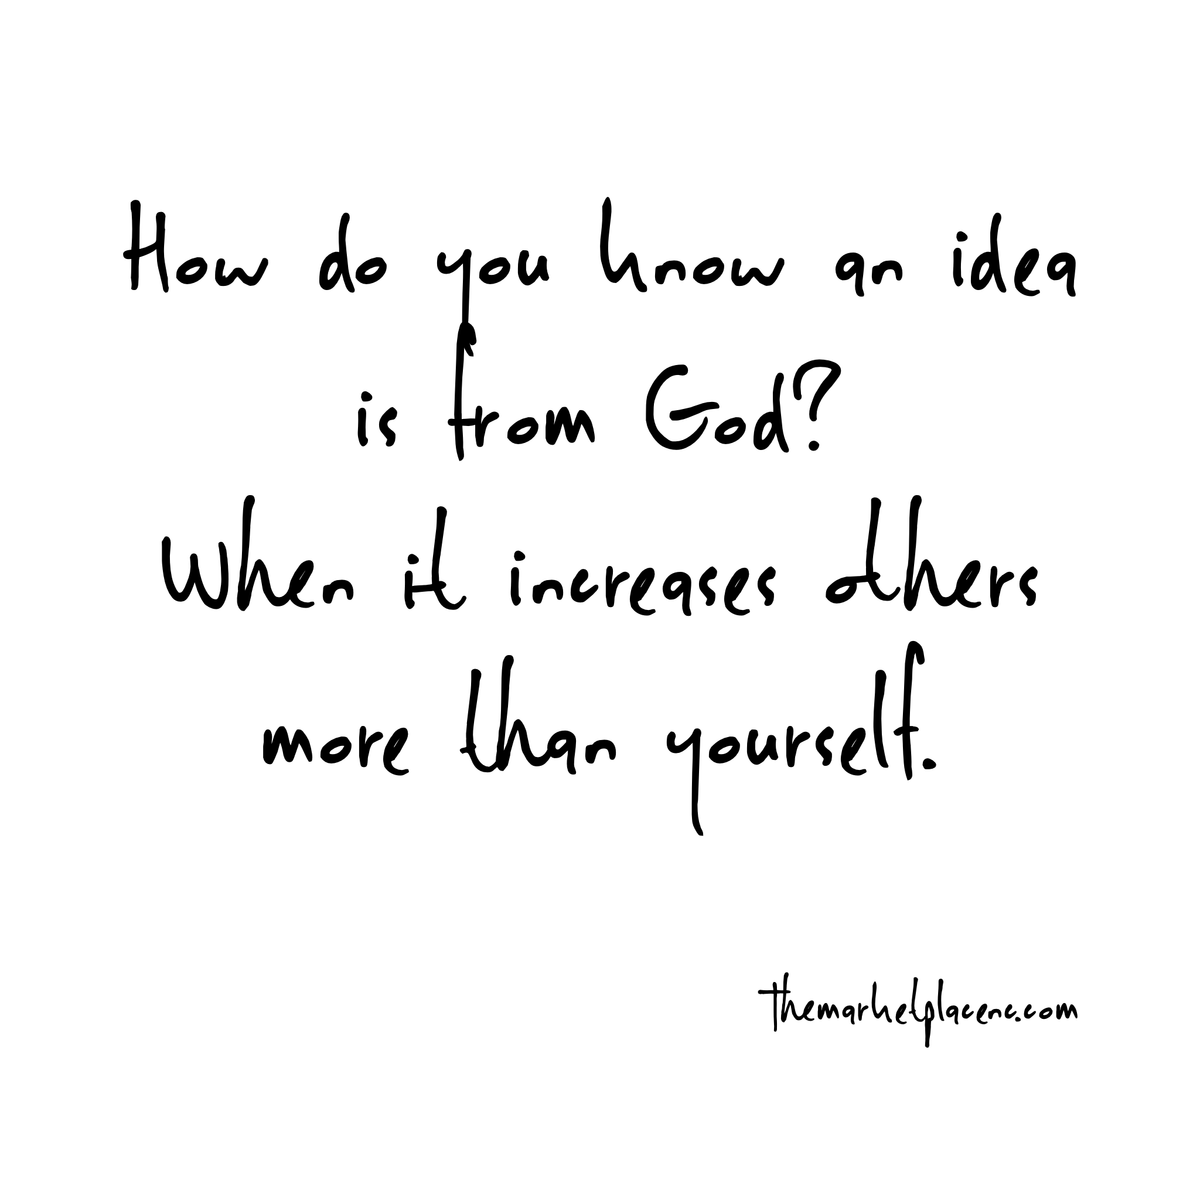 How do you know any ideas from God?